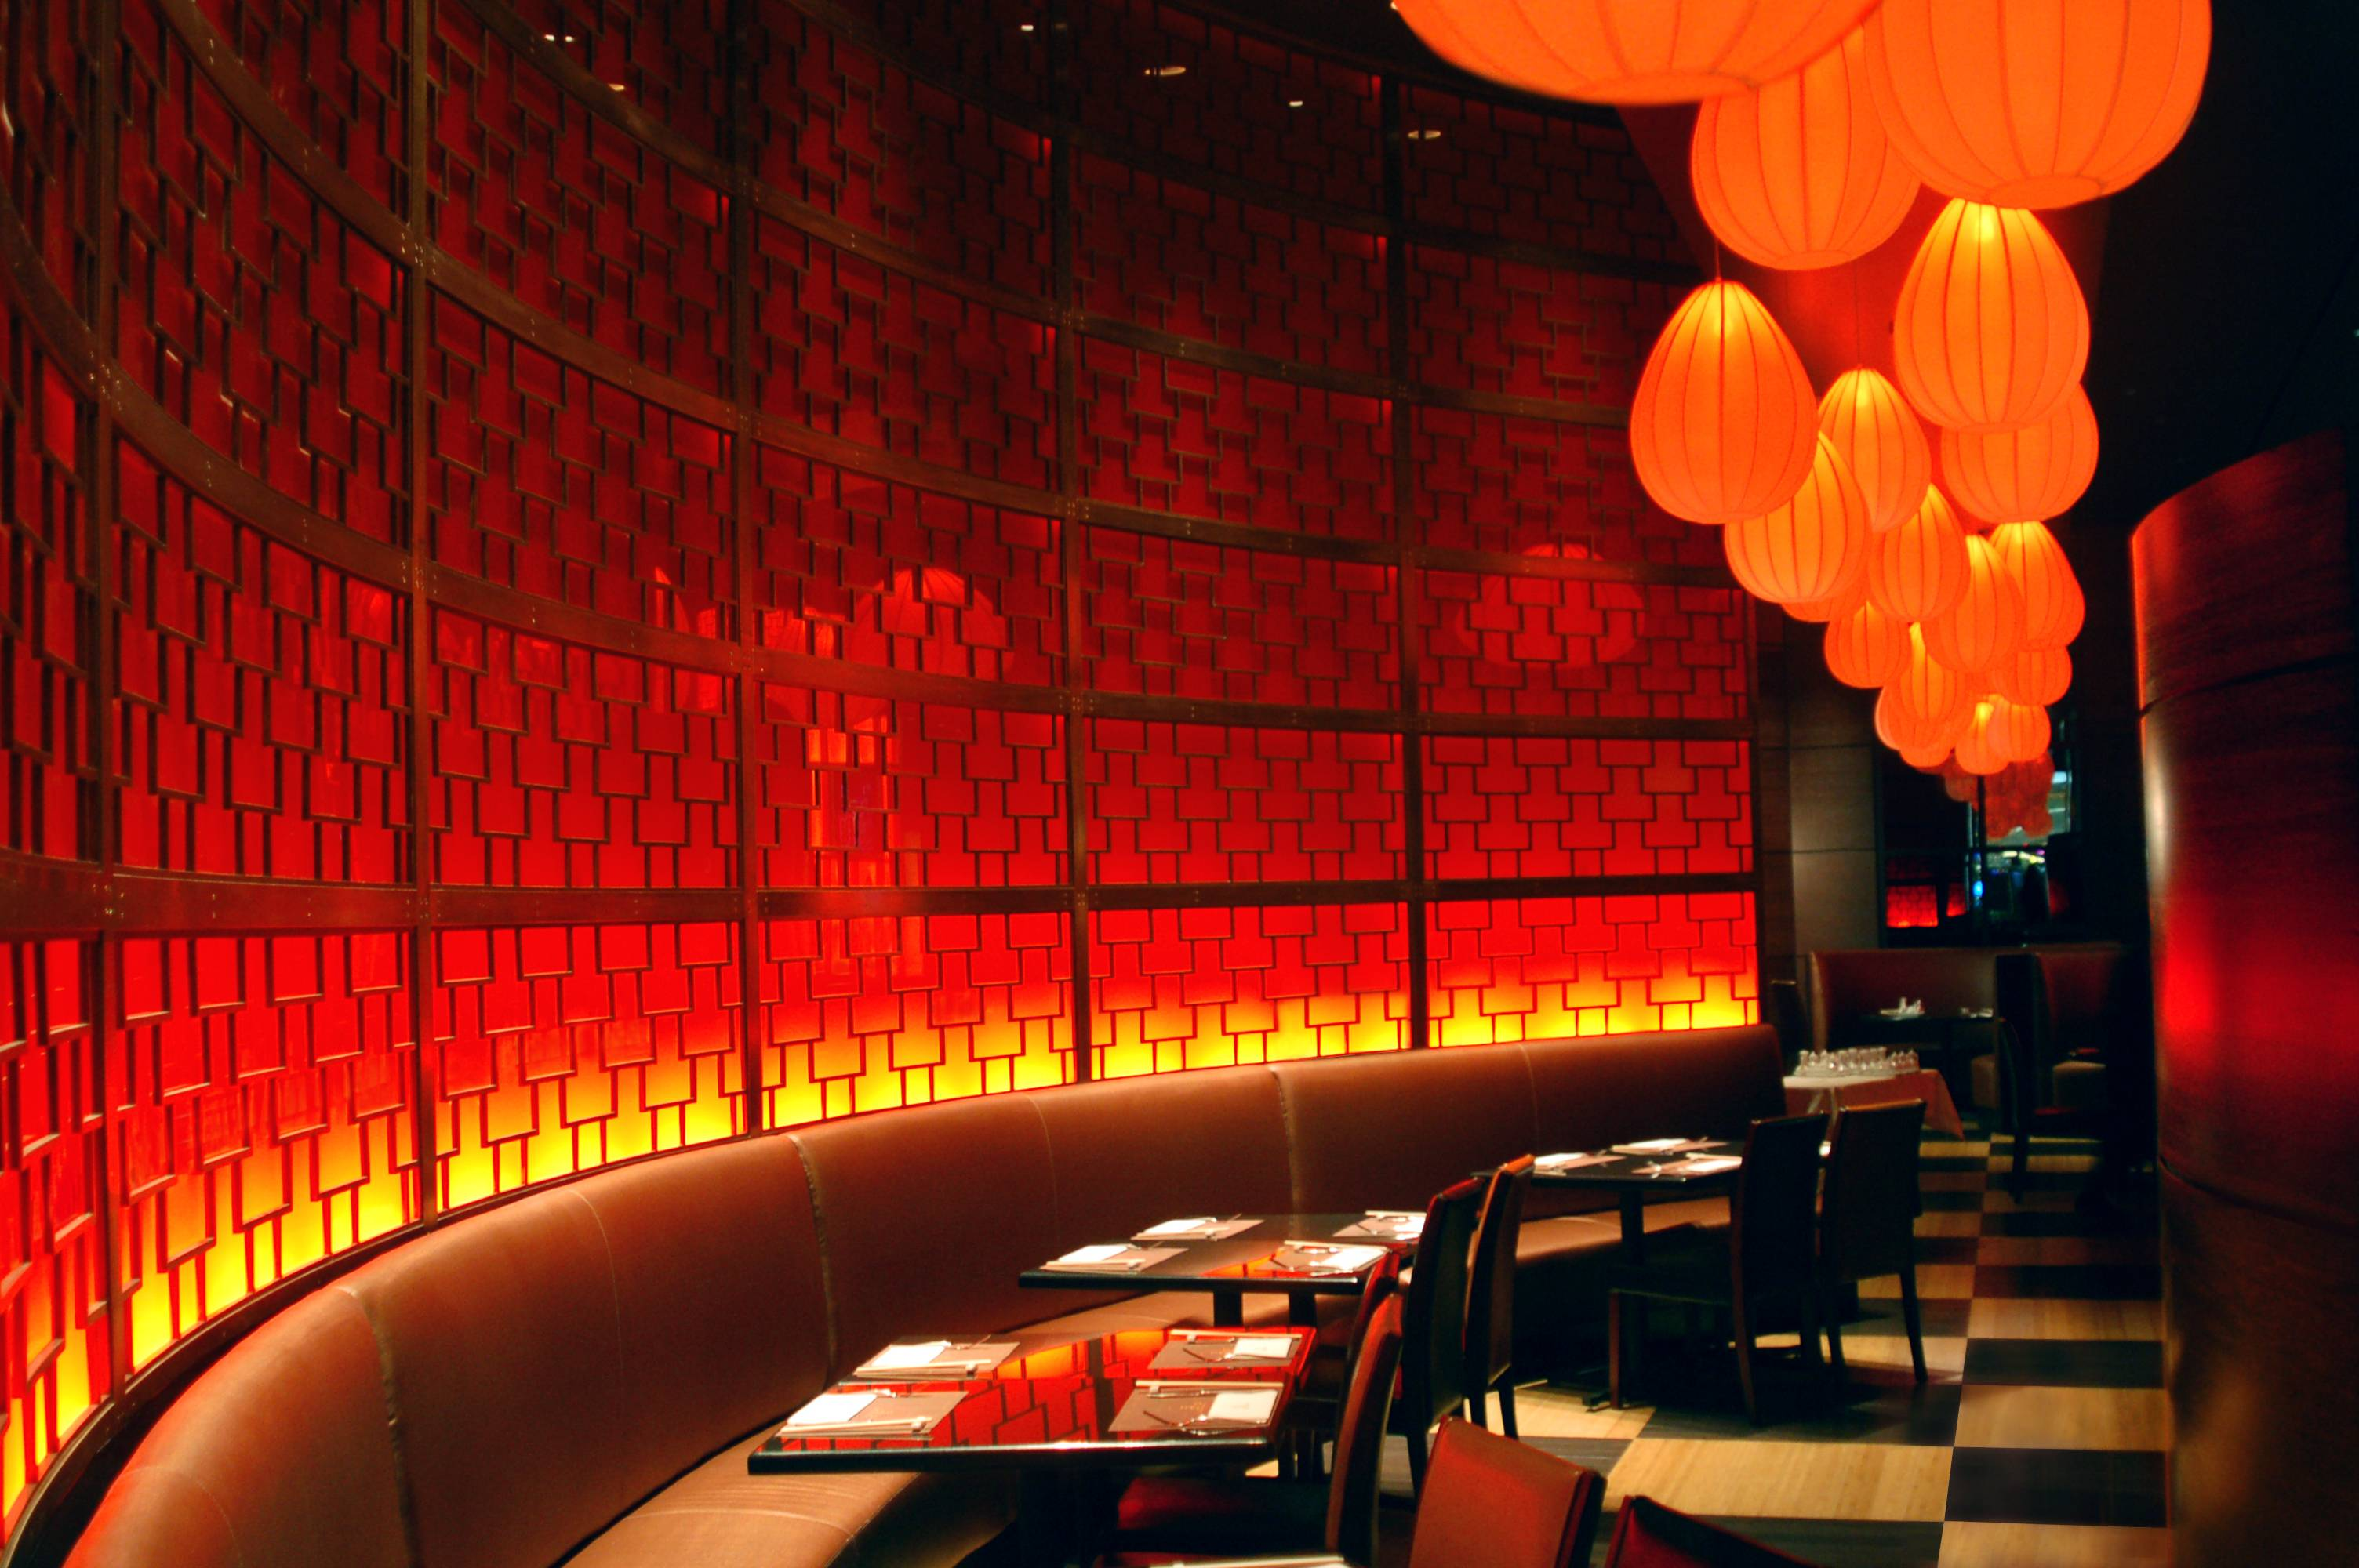 The best restaurants with dim sum in las vegas Interior decorators las vegas